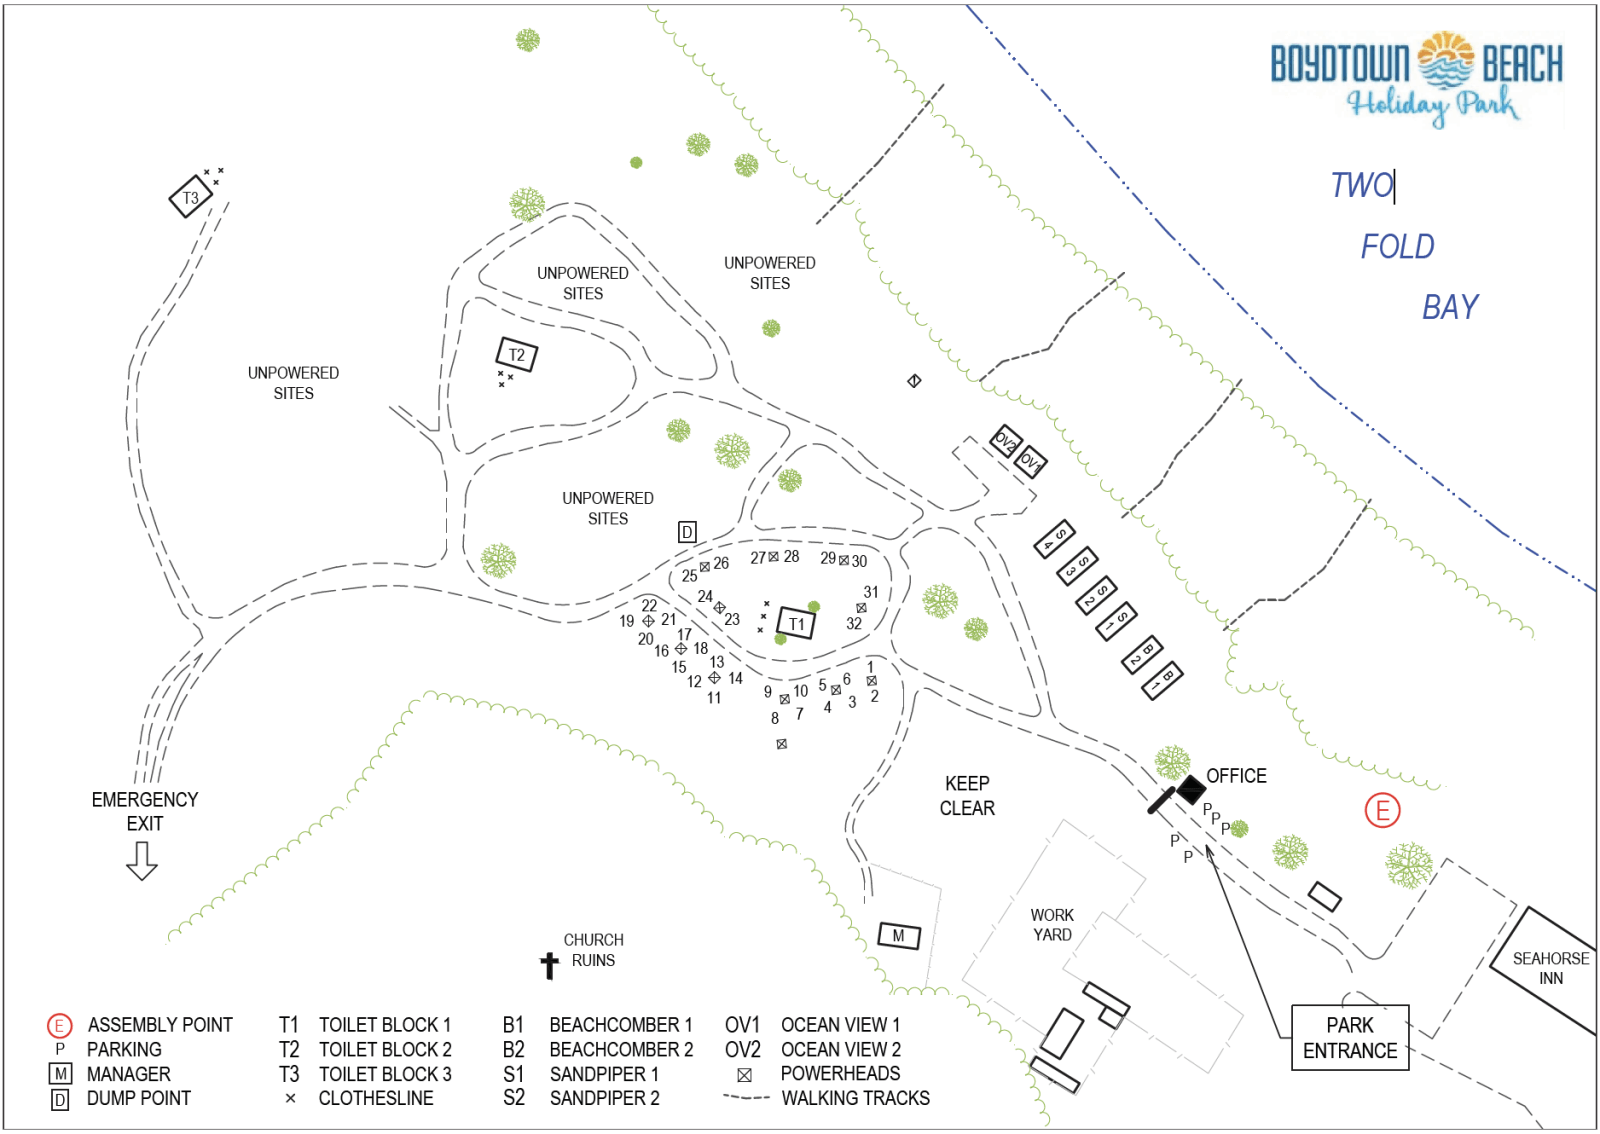 Map of Boydtown Beach Holiday Park